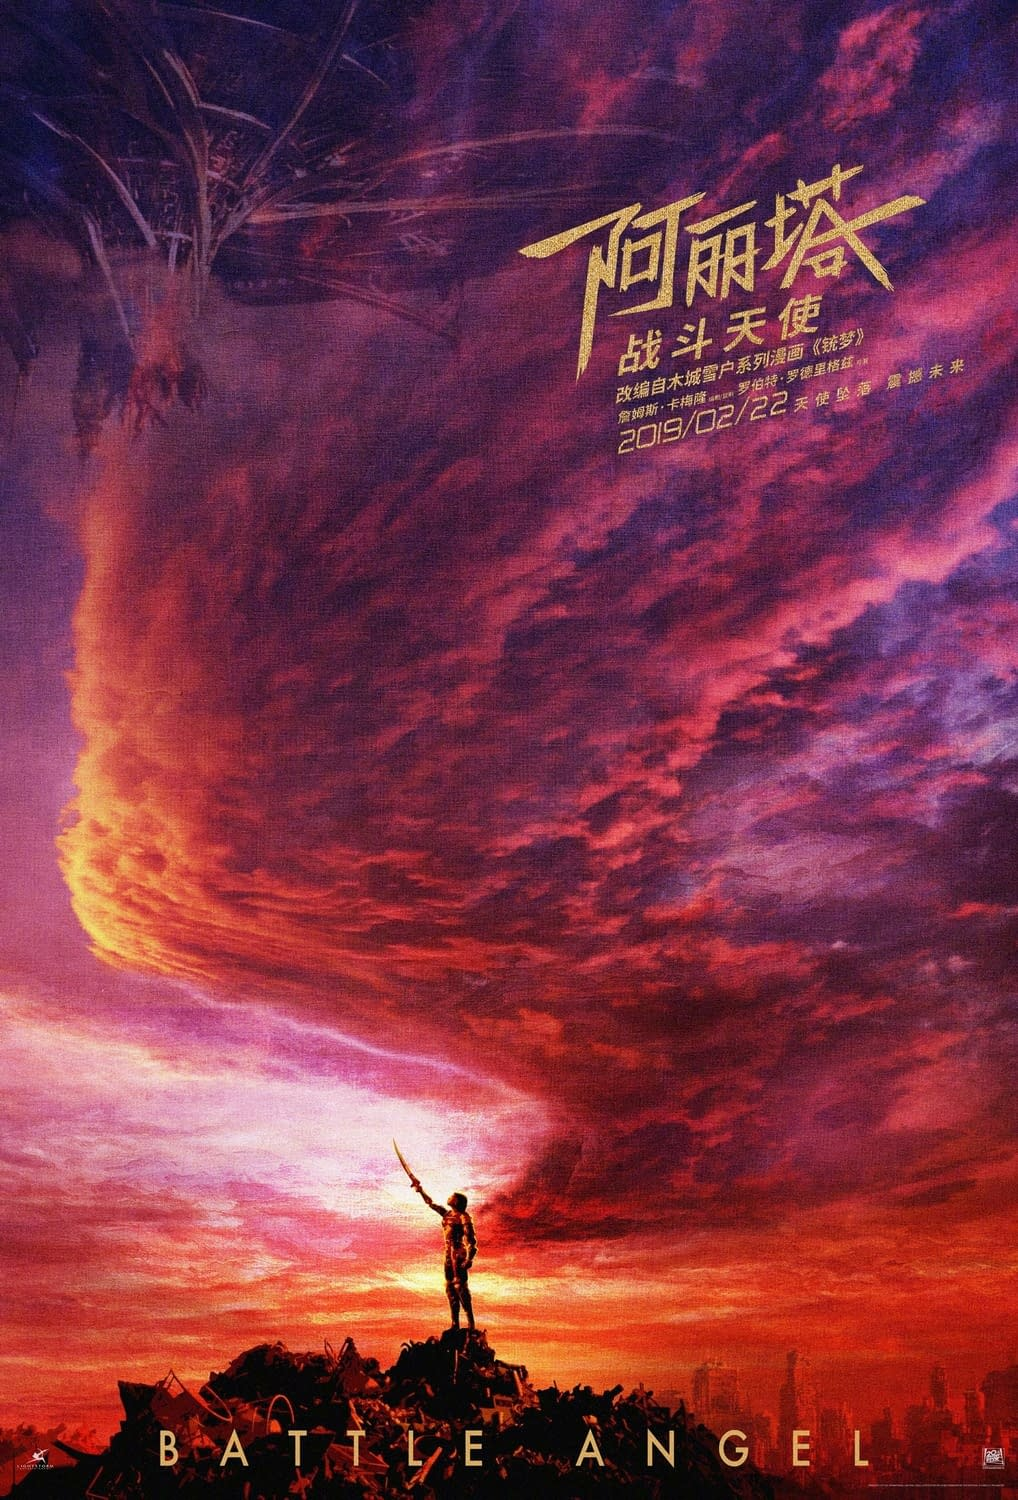 This New Chinese Poster for Alita: Battle Angel is Gorgeous